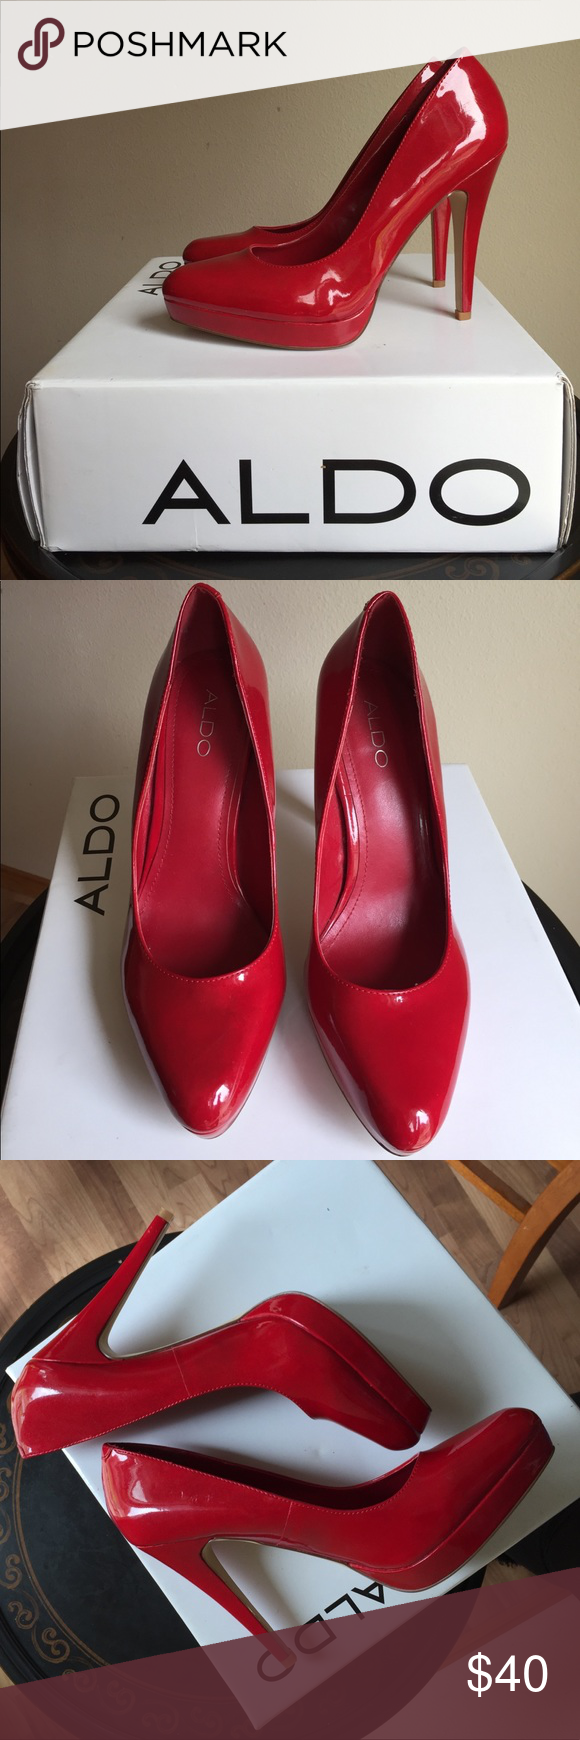 cbc56b814e3 ALDO Red Patent Heels Like new condition! Unnoticeable Slight scratches  (see pictures). These are GORGEOUS and Confident statement shoes!